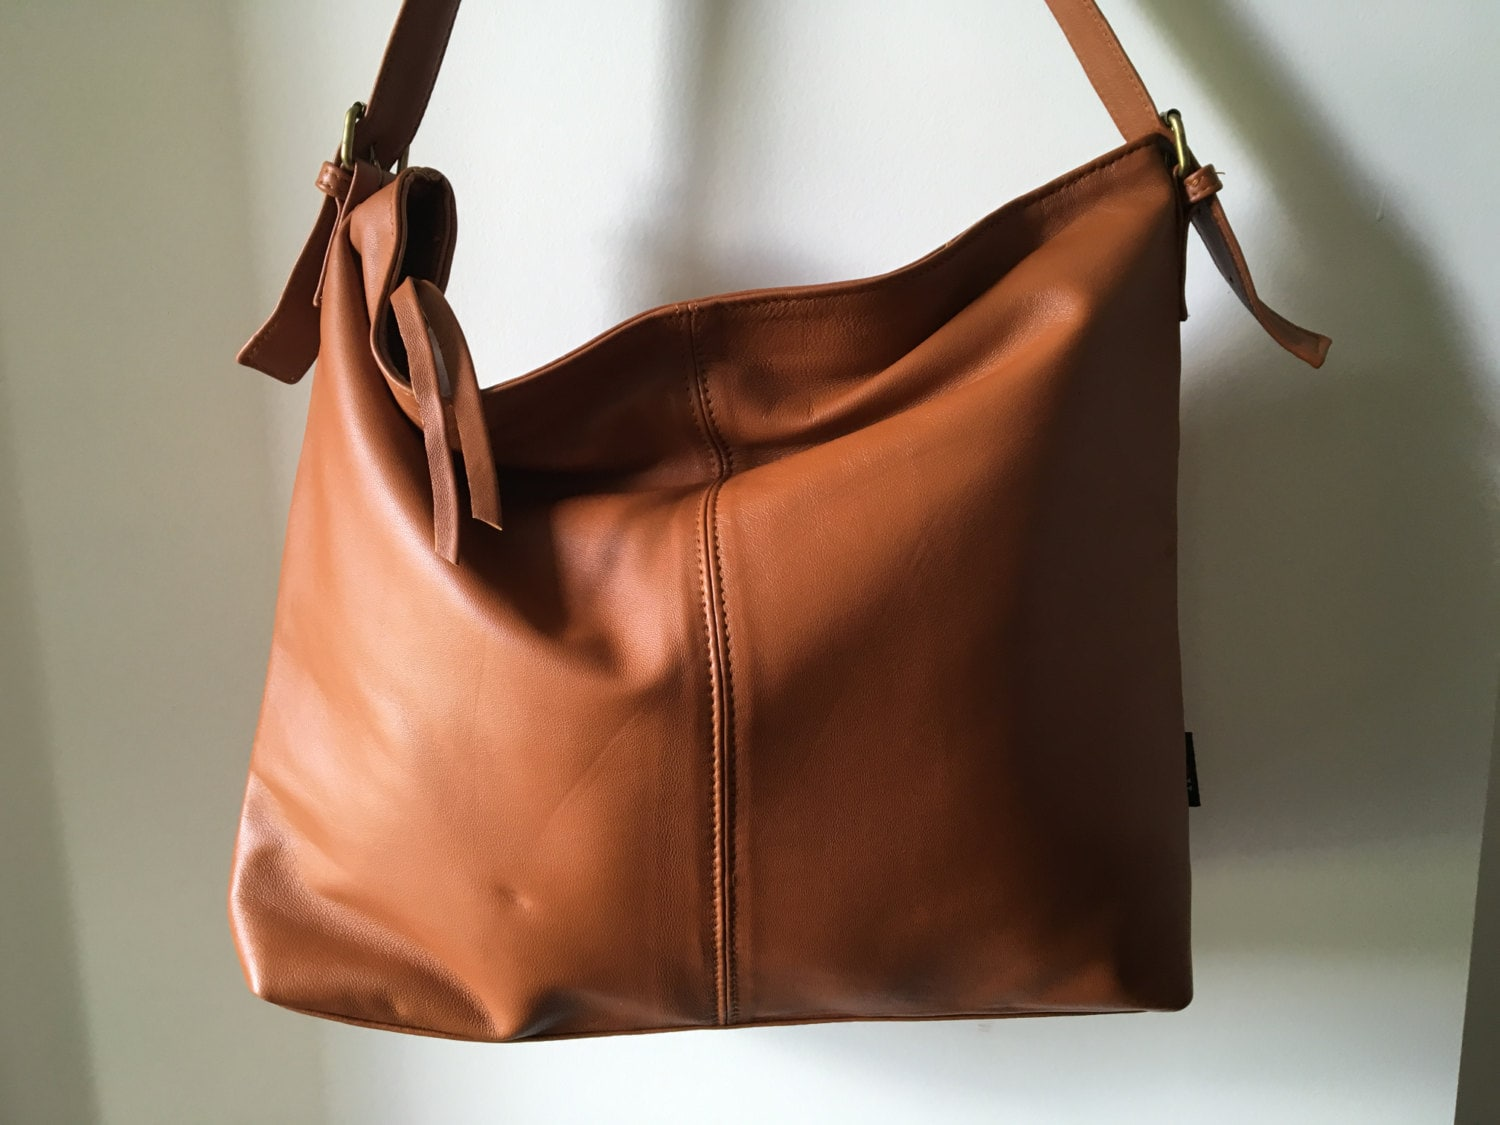 ea7c86b816a Leather Tote shoulder bag.Single strap,adjustable belt features.Quality,  soft, shoulder bag. Real leather with long strap.Classic and simple